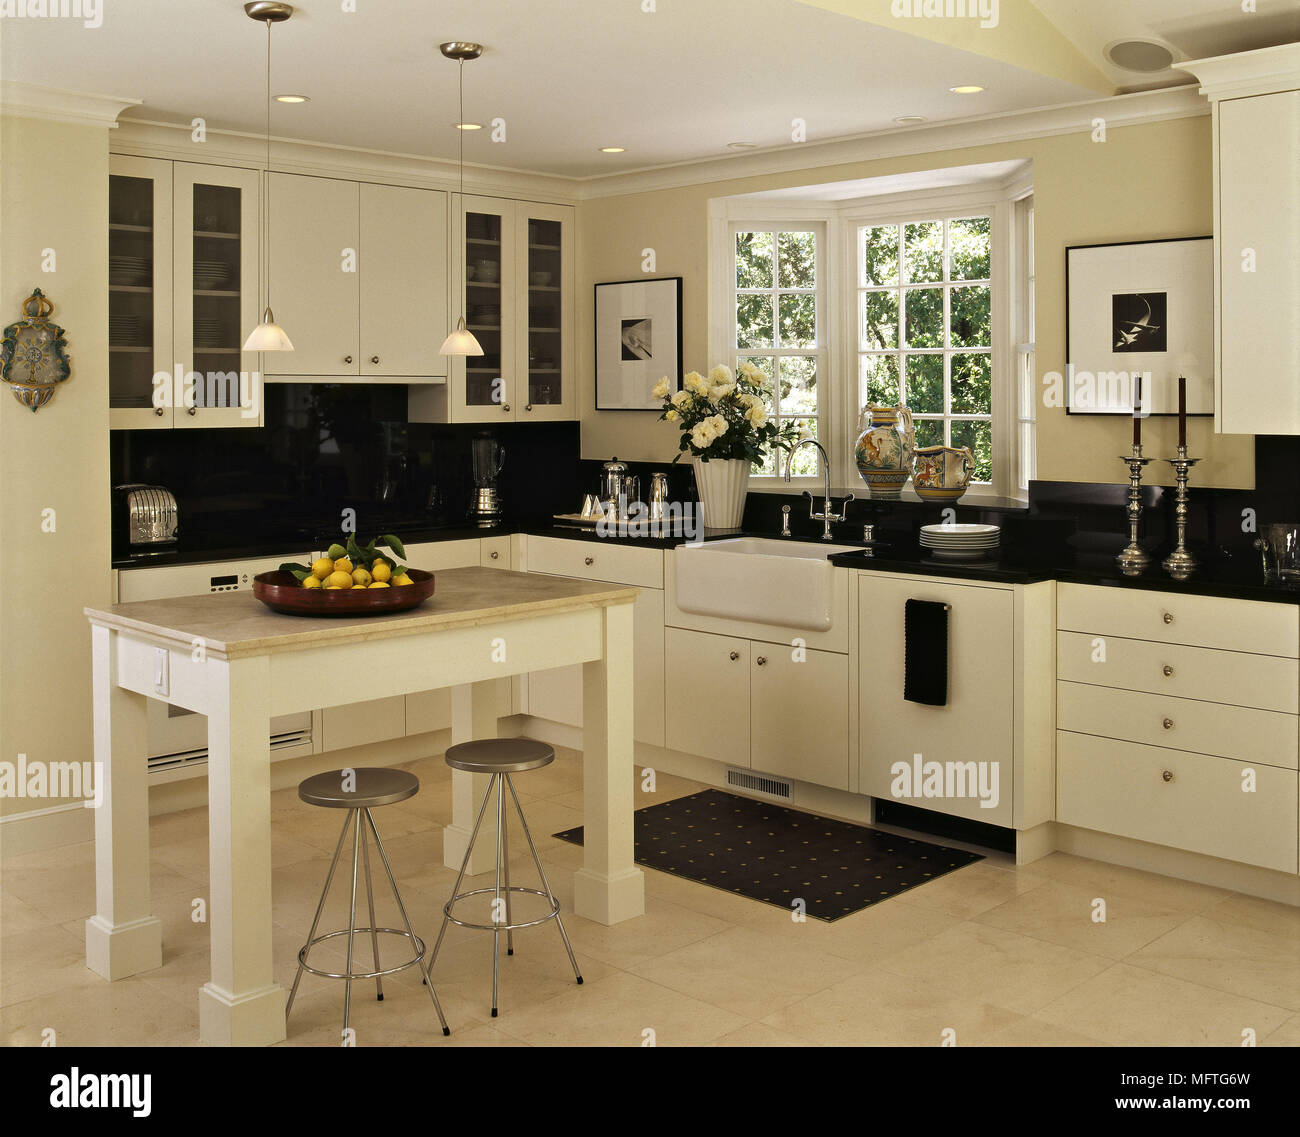 interiors modern cream kitchens stockfotos interiors modern cream kitchens bilder alamy. Black Bedroom Furniture Sets. Home Design Ideas